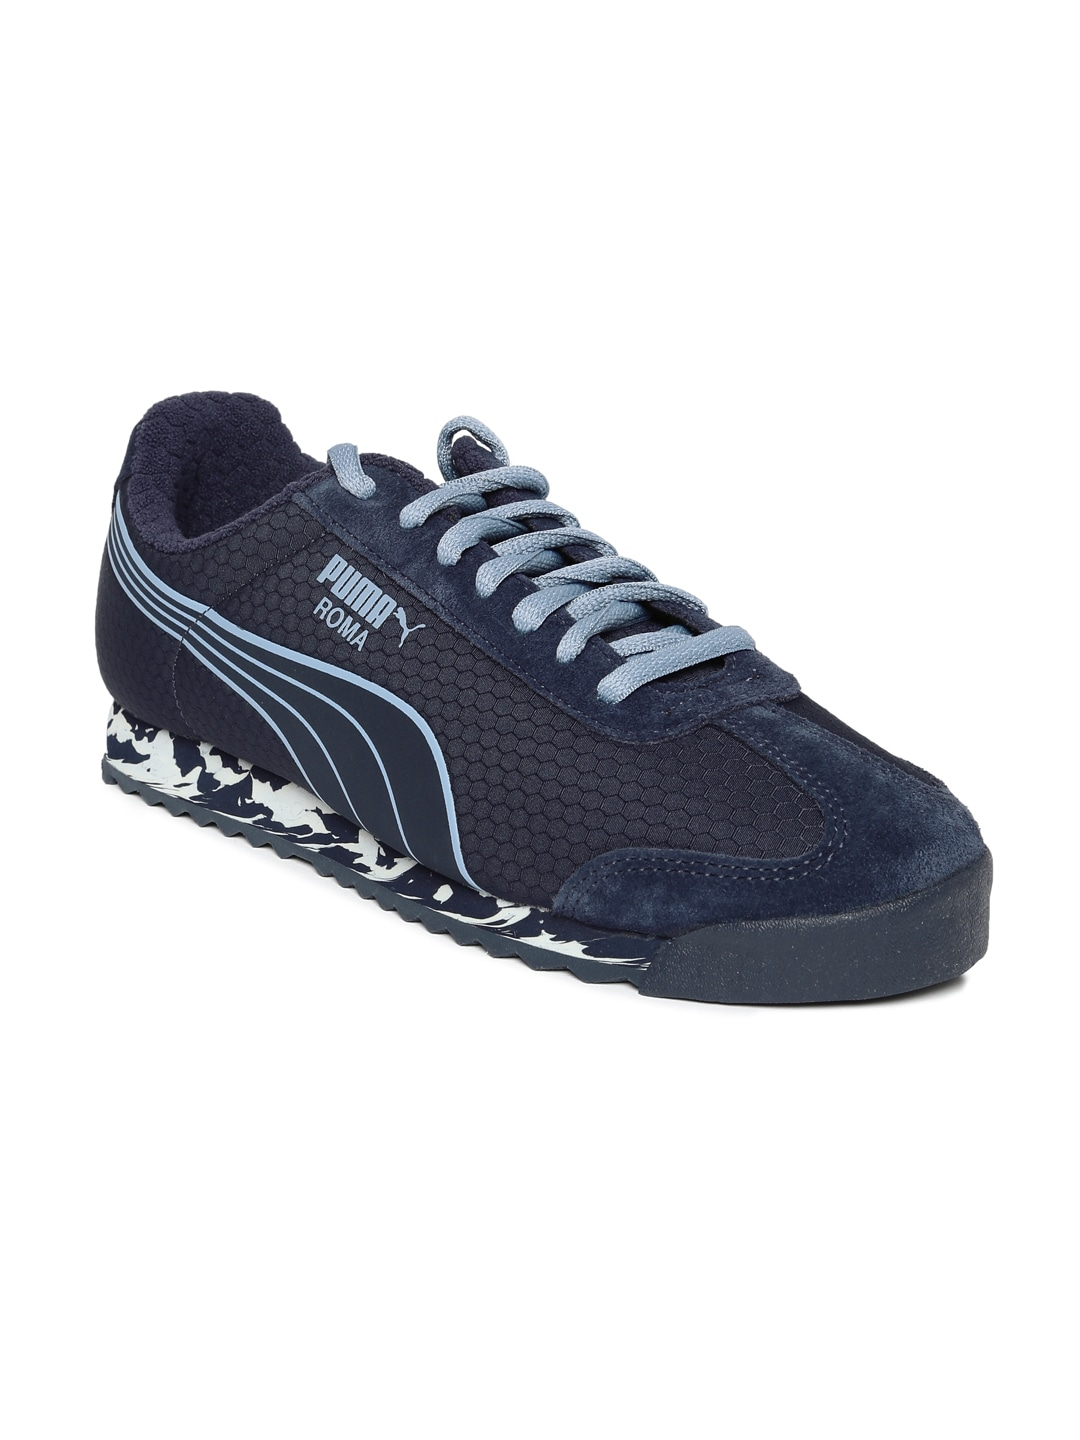 Puma Men Suede Archie Navy Blue Blue Shoes - Buy Puma Men Suede Archie Navy  Blue Blue Shoes online in India adf0d9707